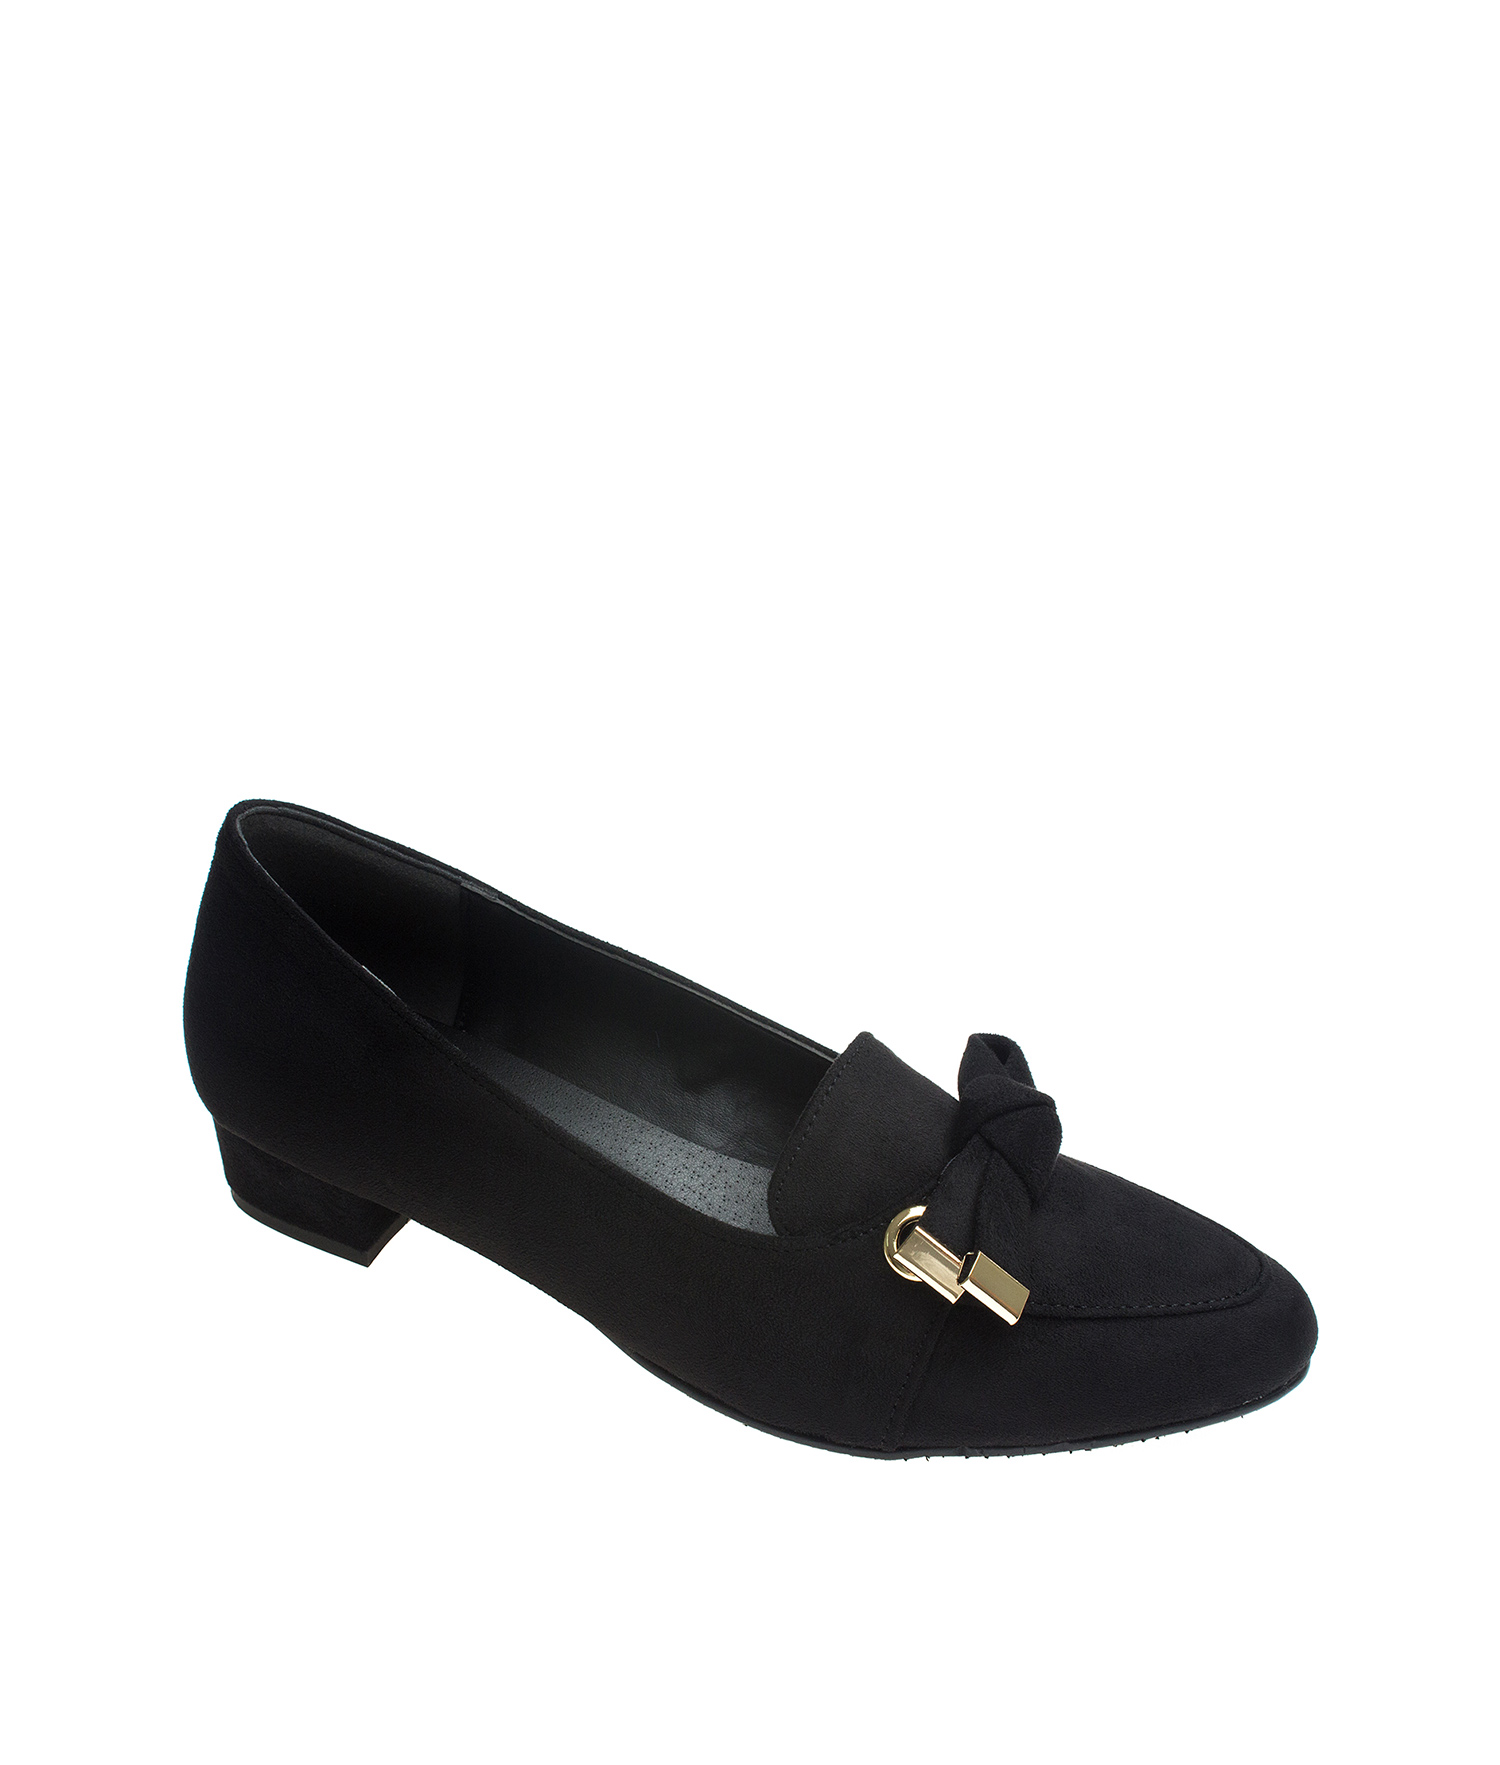 2d3df84a3fbd AnnaKastle Womens Knotted Bow Block Heel Loafer Pumps Black